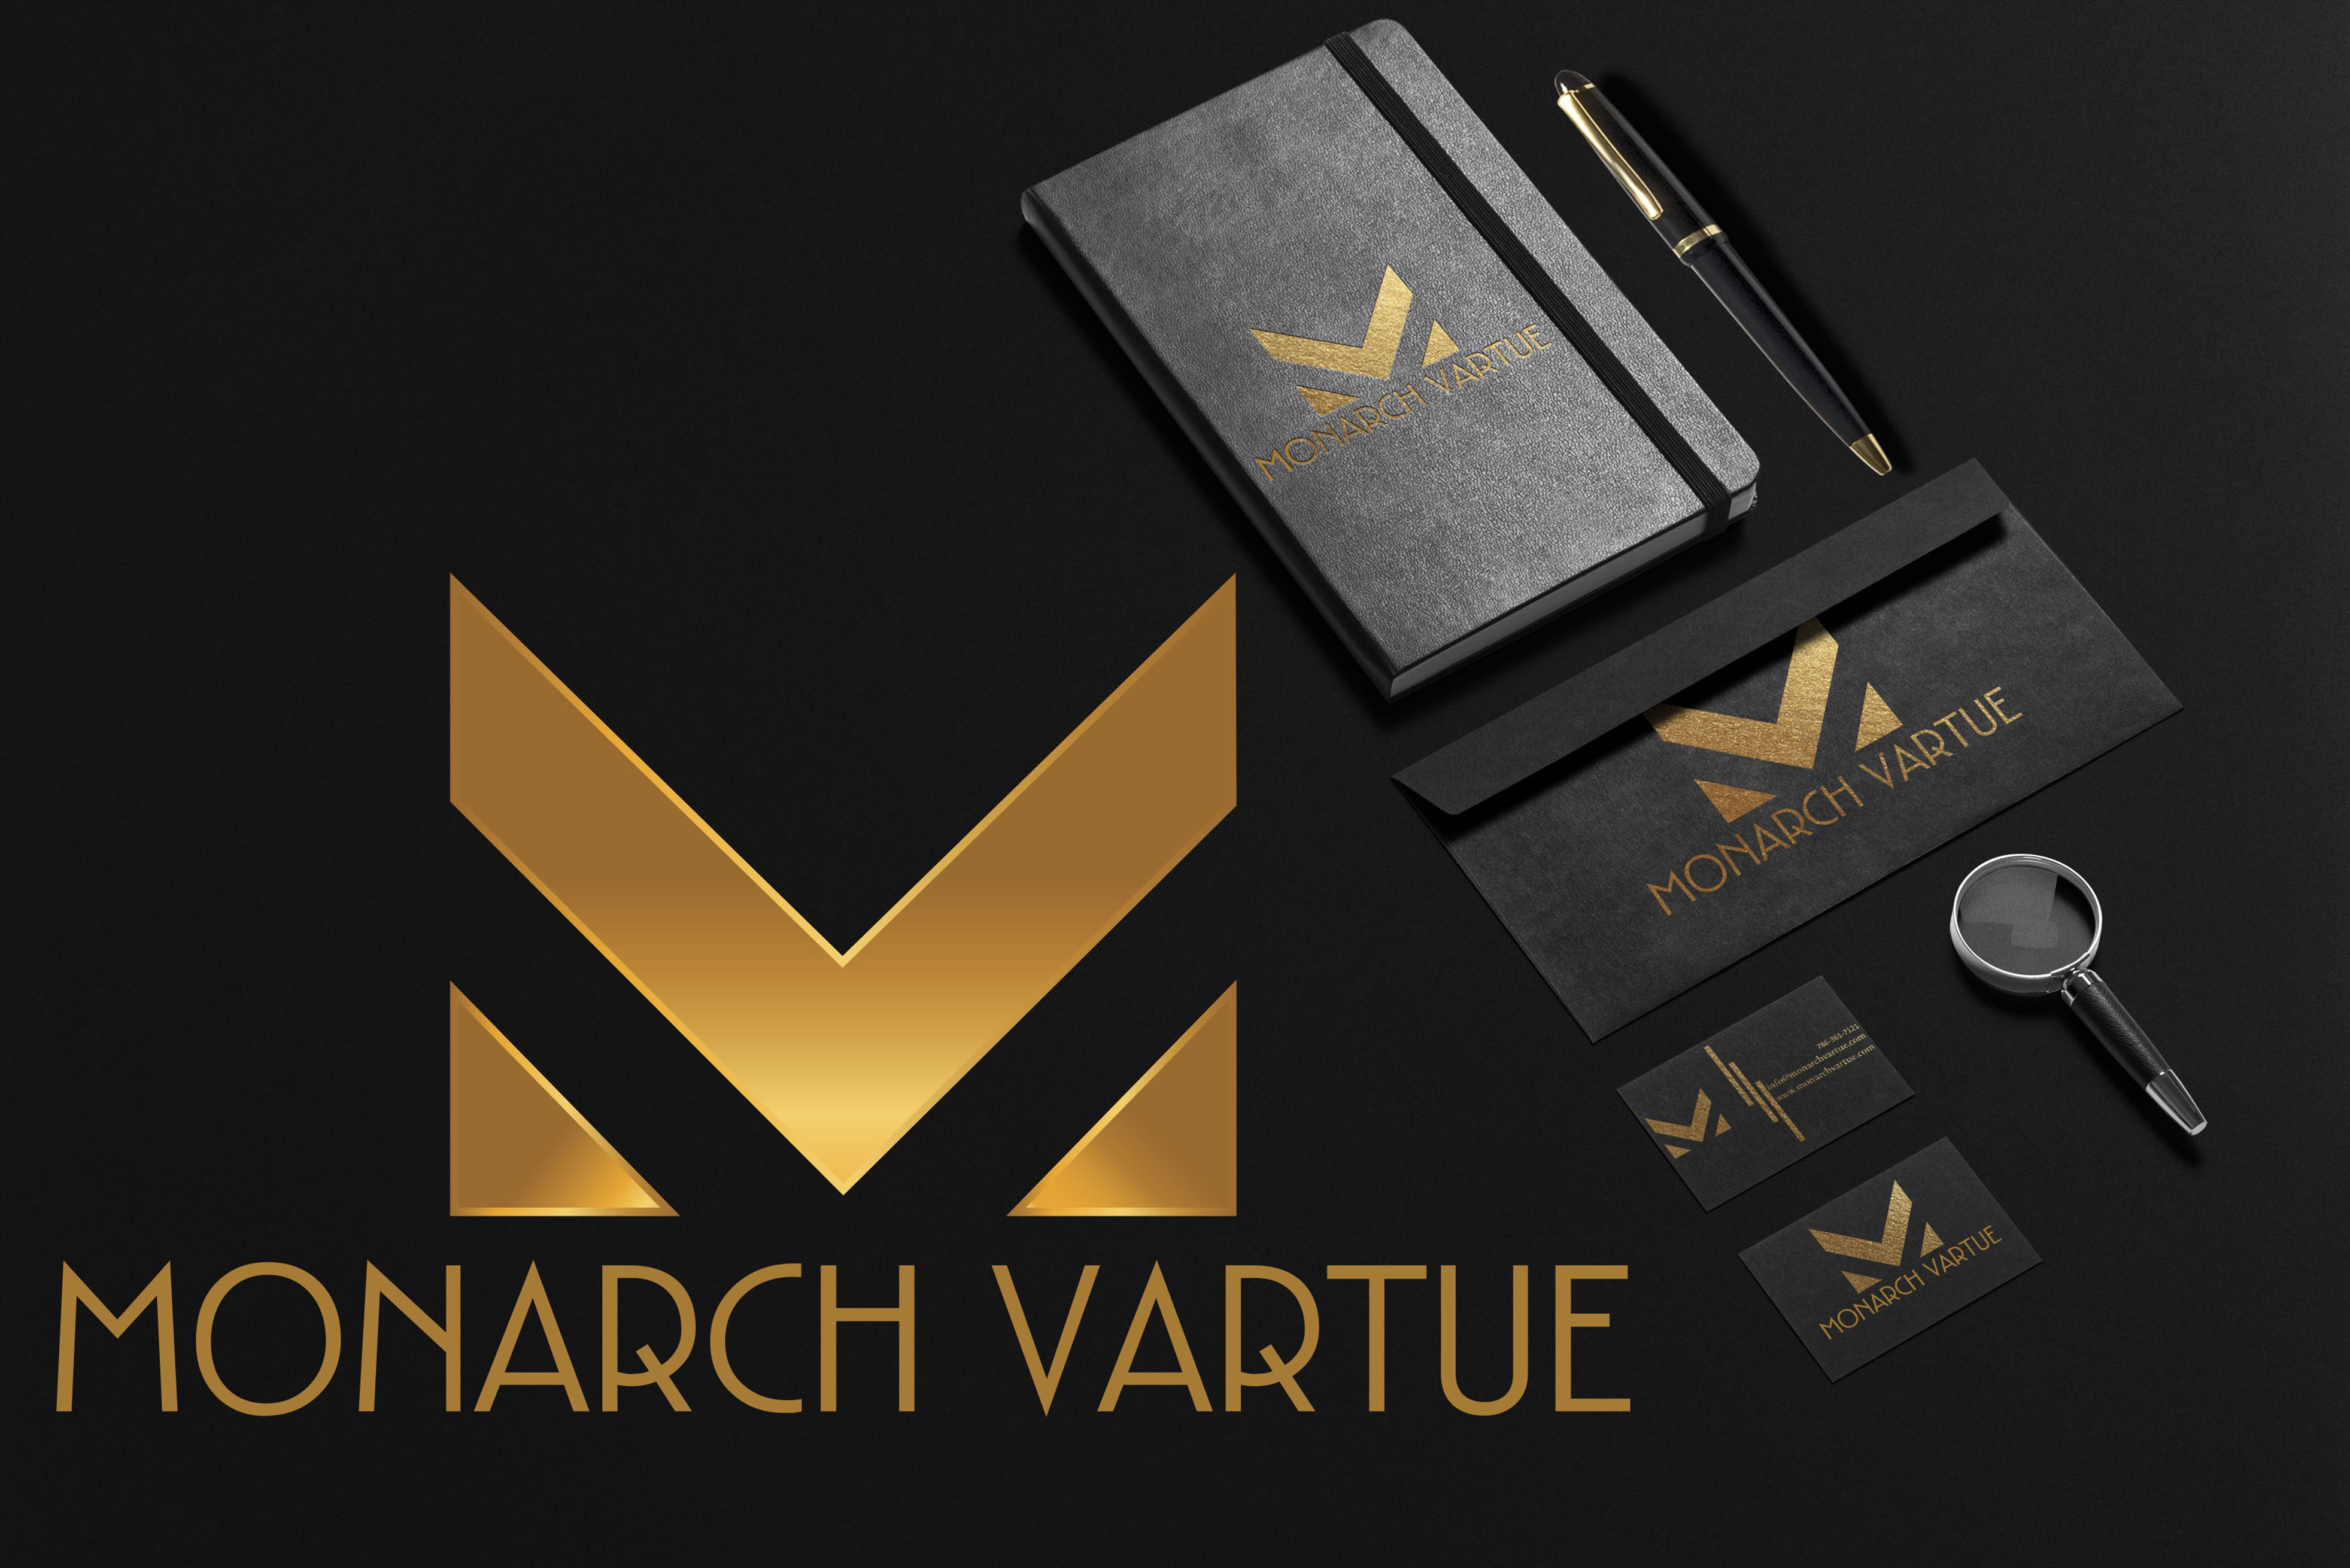 I will do luxury minimalist business logo design with copyright